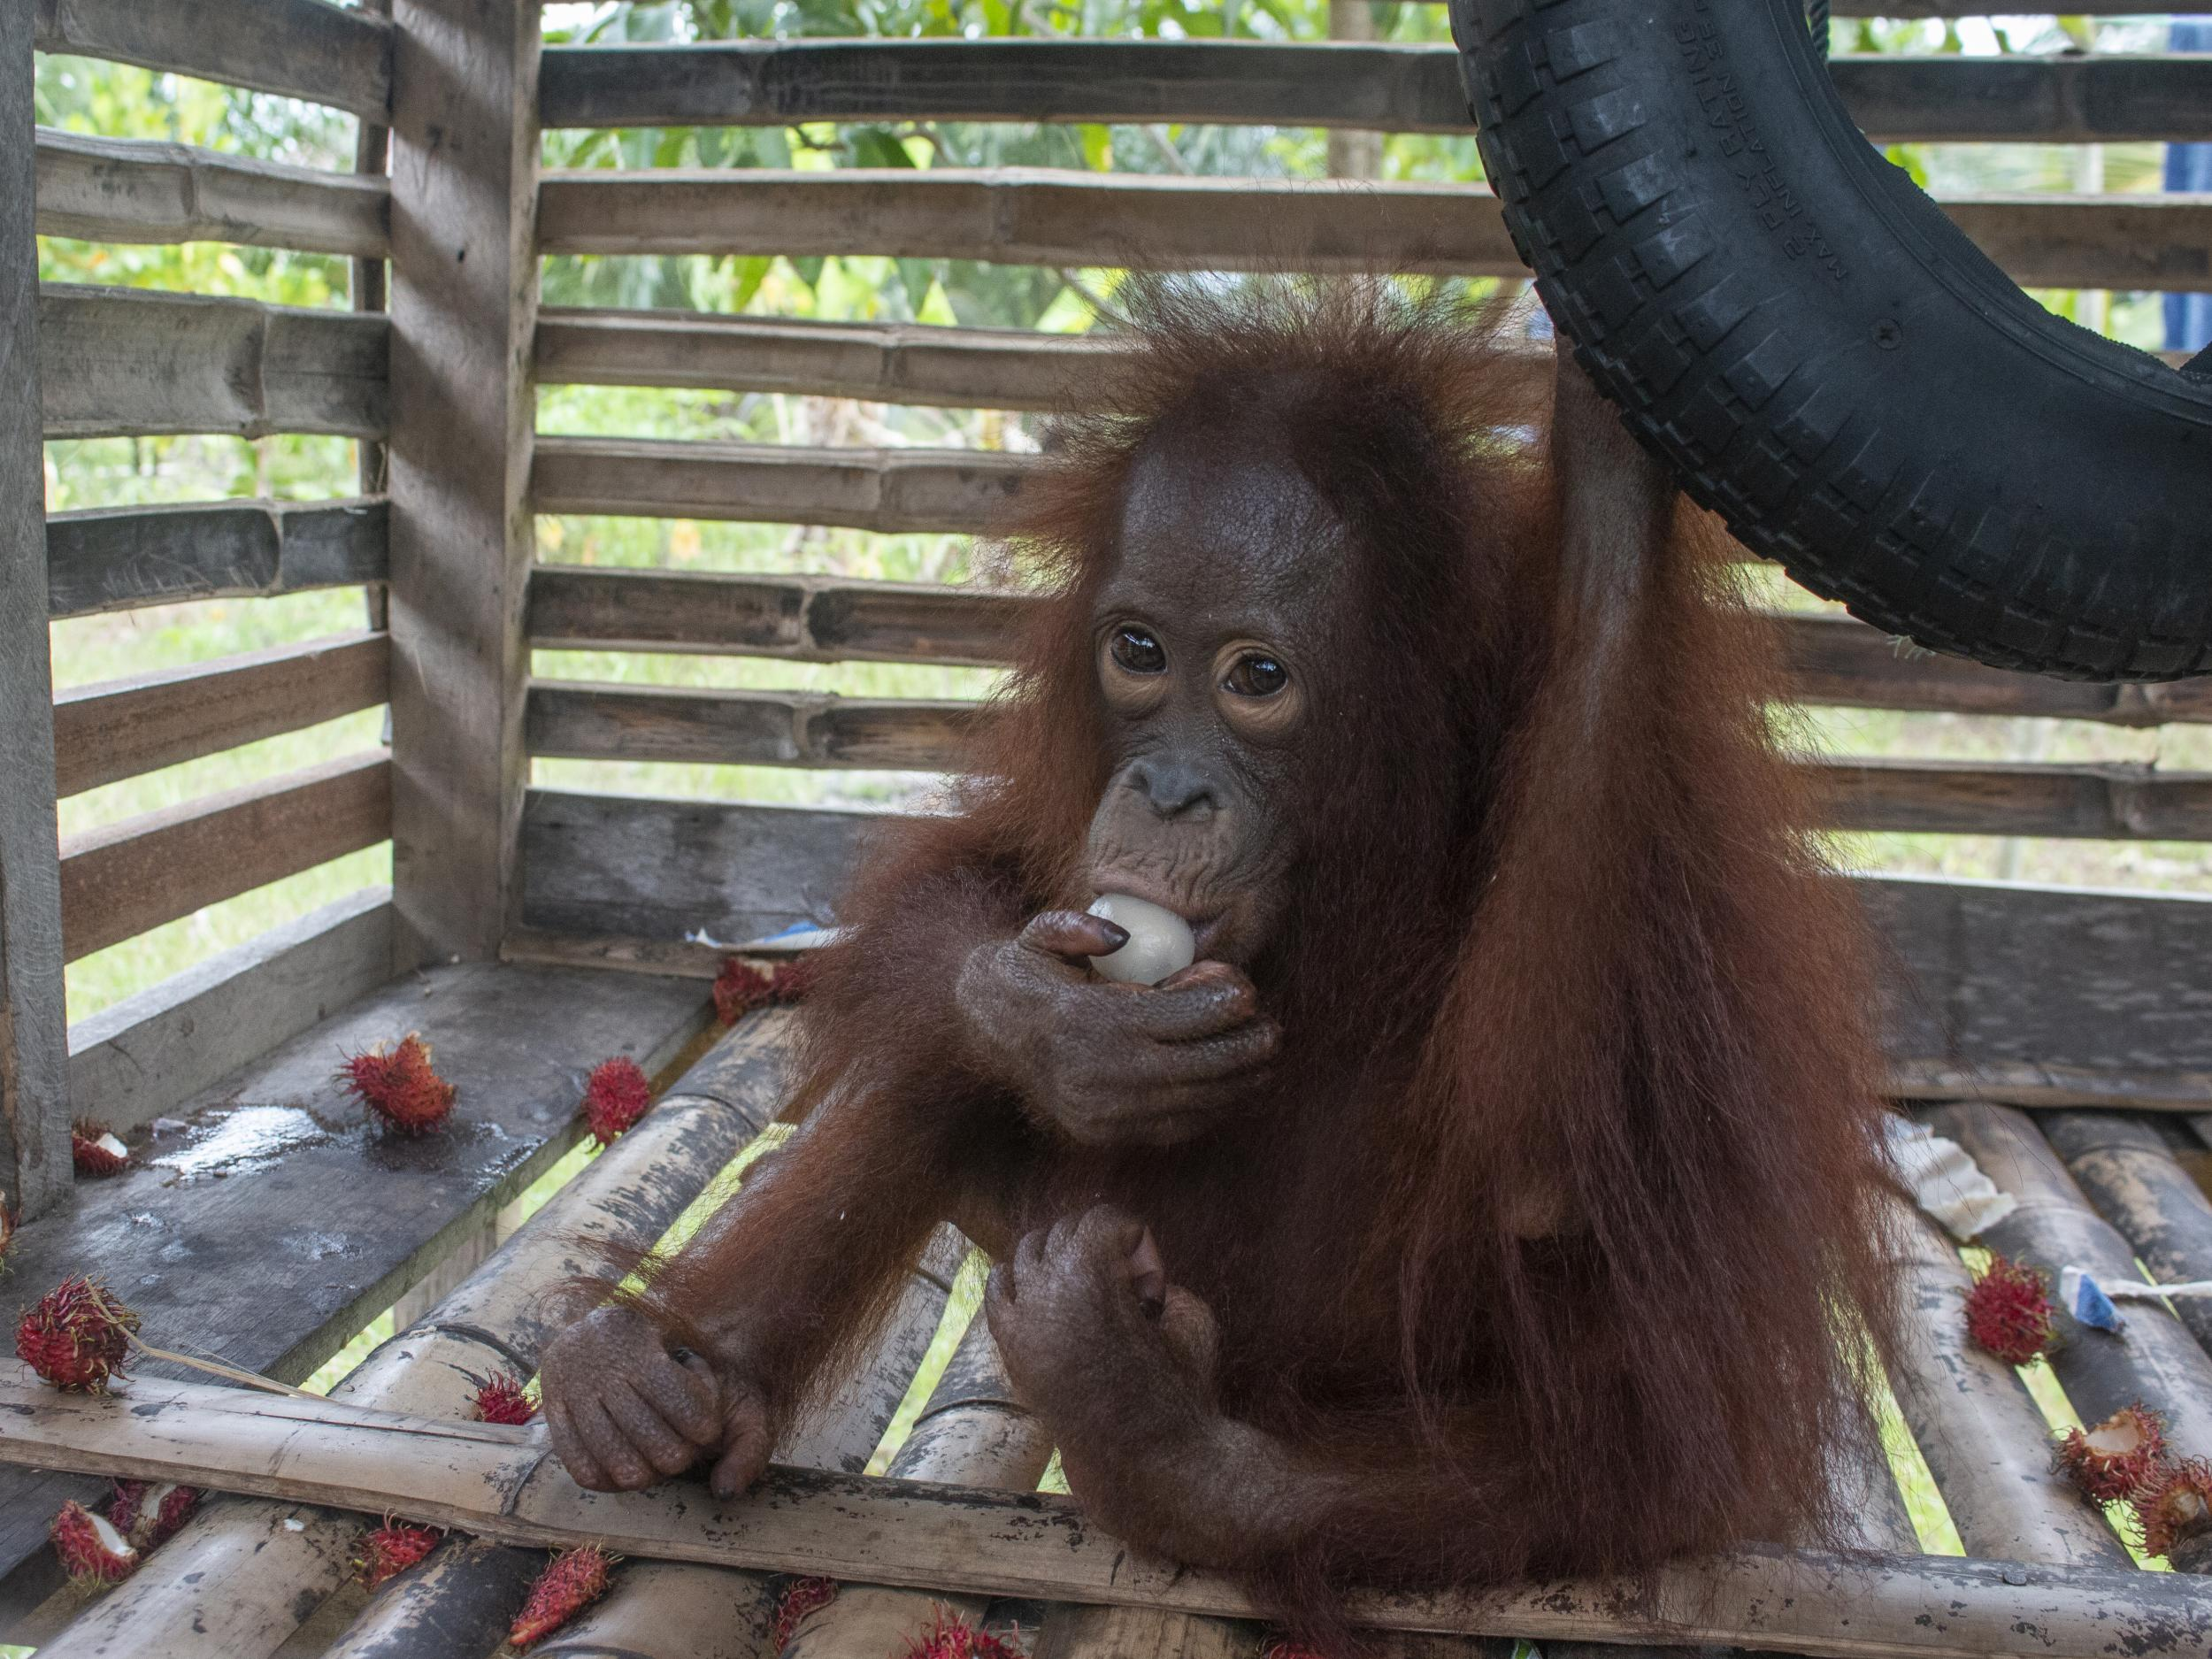 Orangutan in Borneo rescued after four years locked in a wooden crate